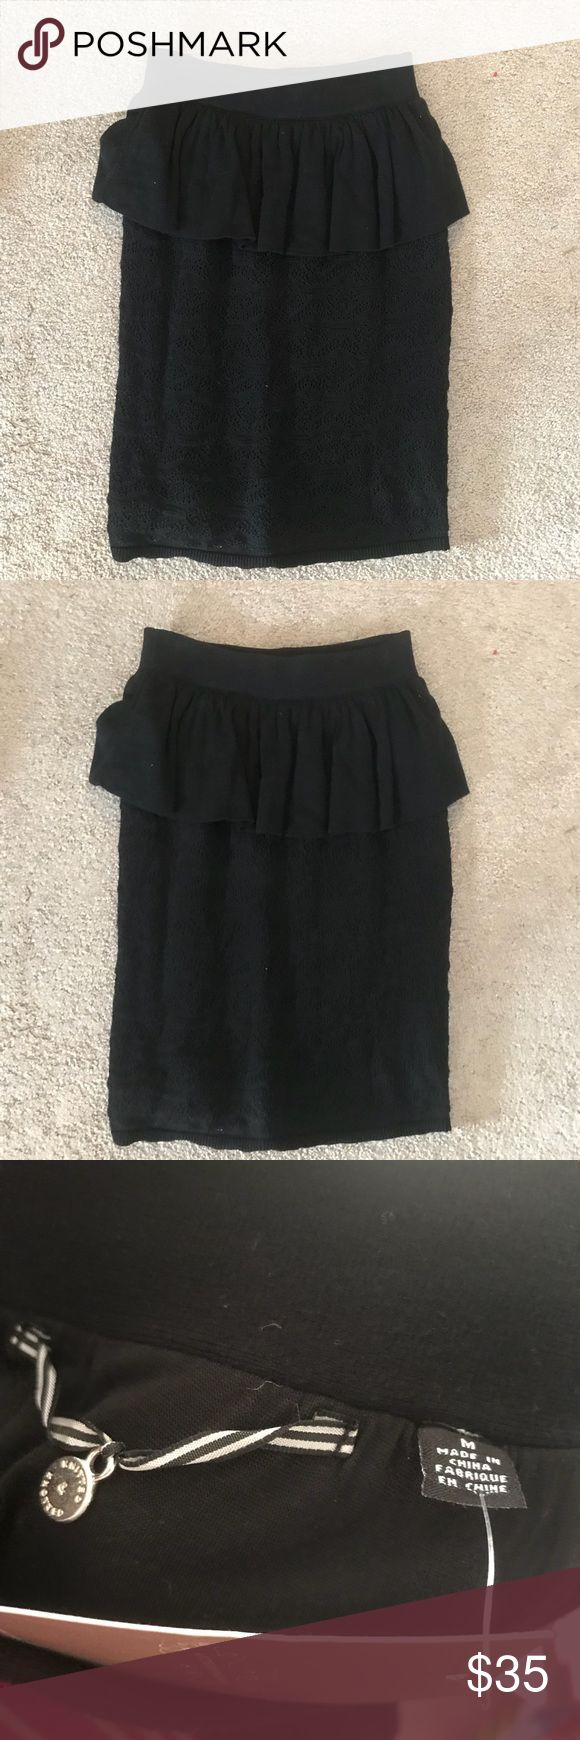 Knit & Knotted Peplum Skirt Brand new with tags!! So cute and even comfortable! Totally in love with it! Anthropologie Skirts